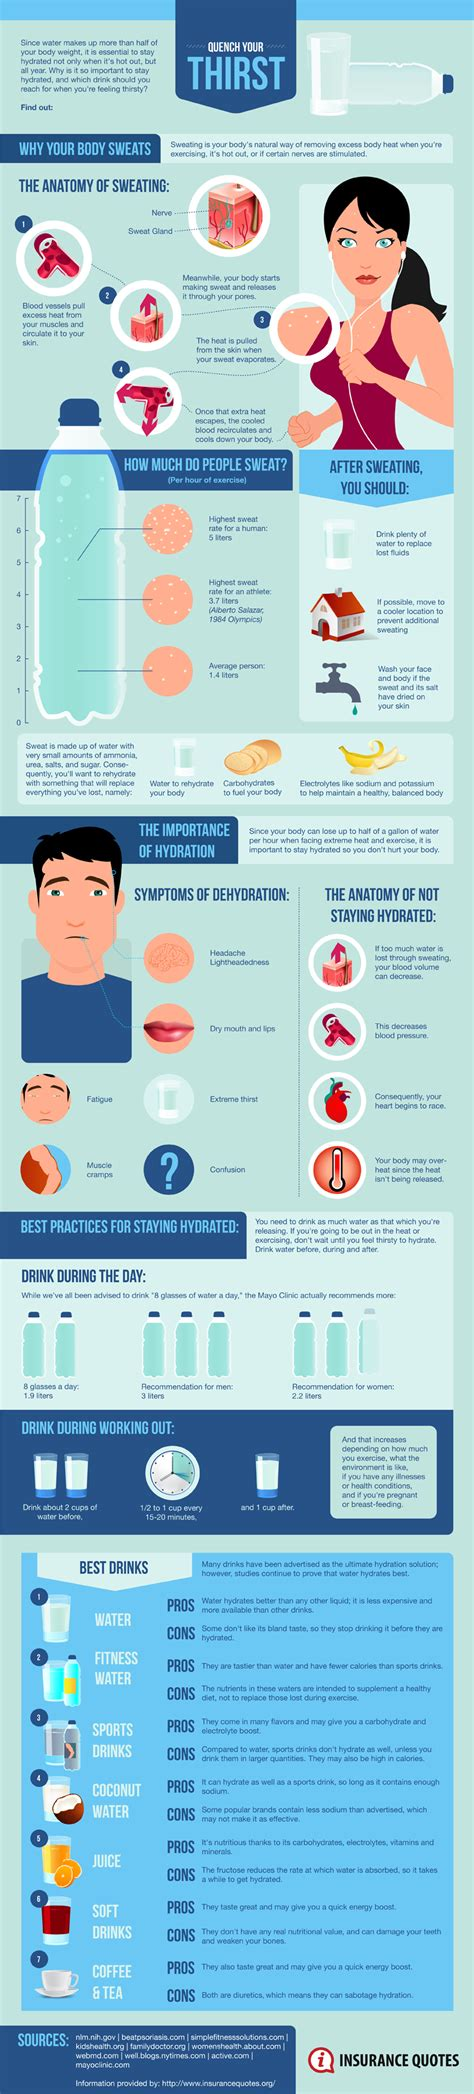 hydration synonym image gallery hydration infographic